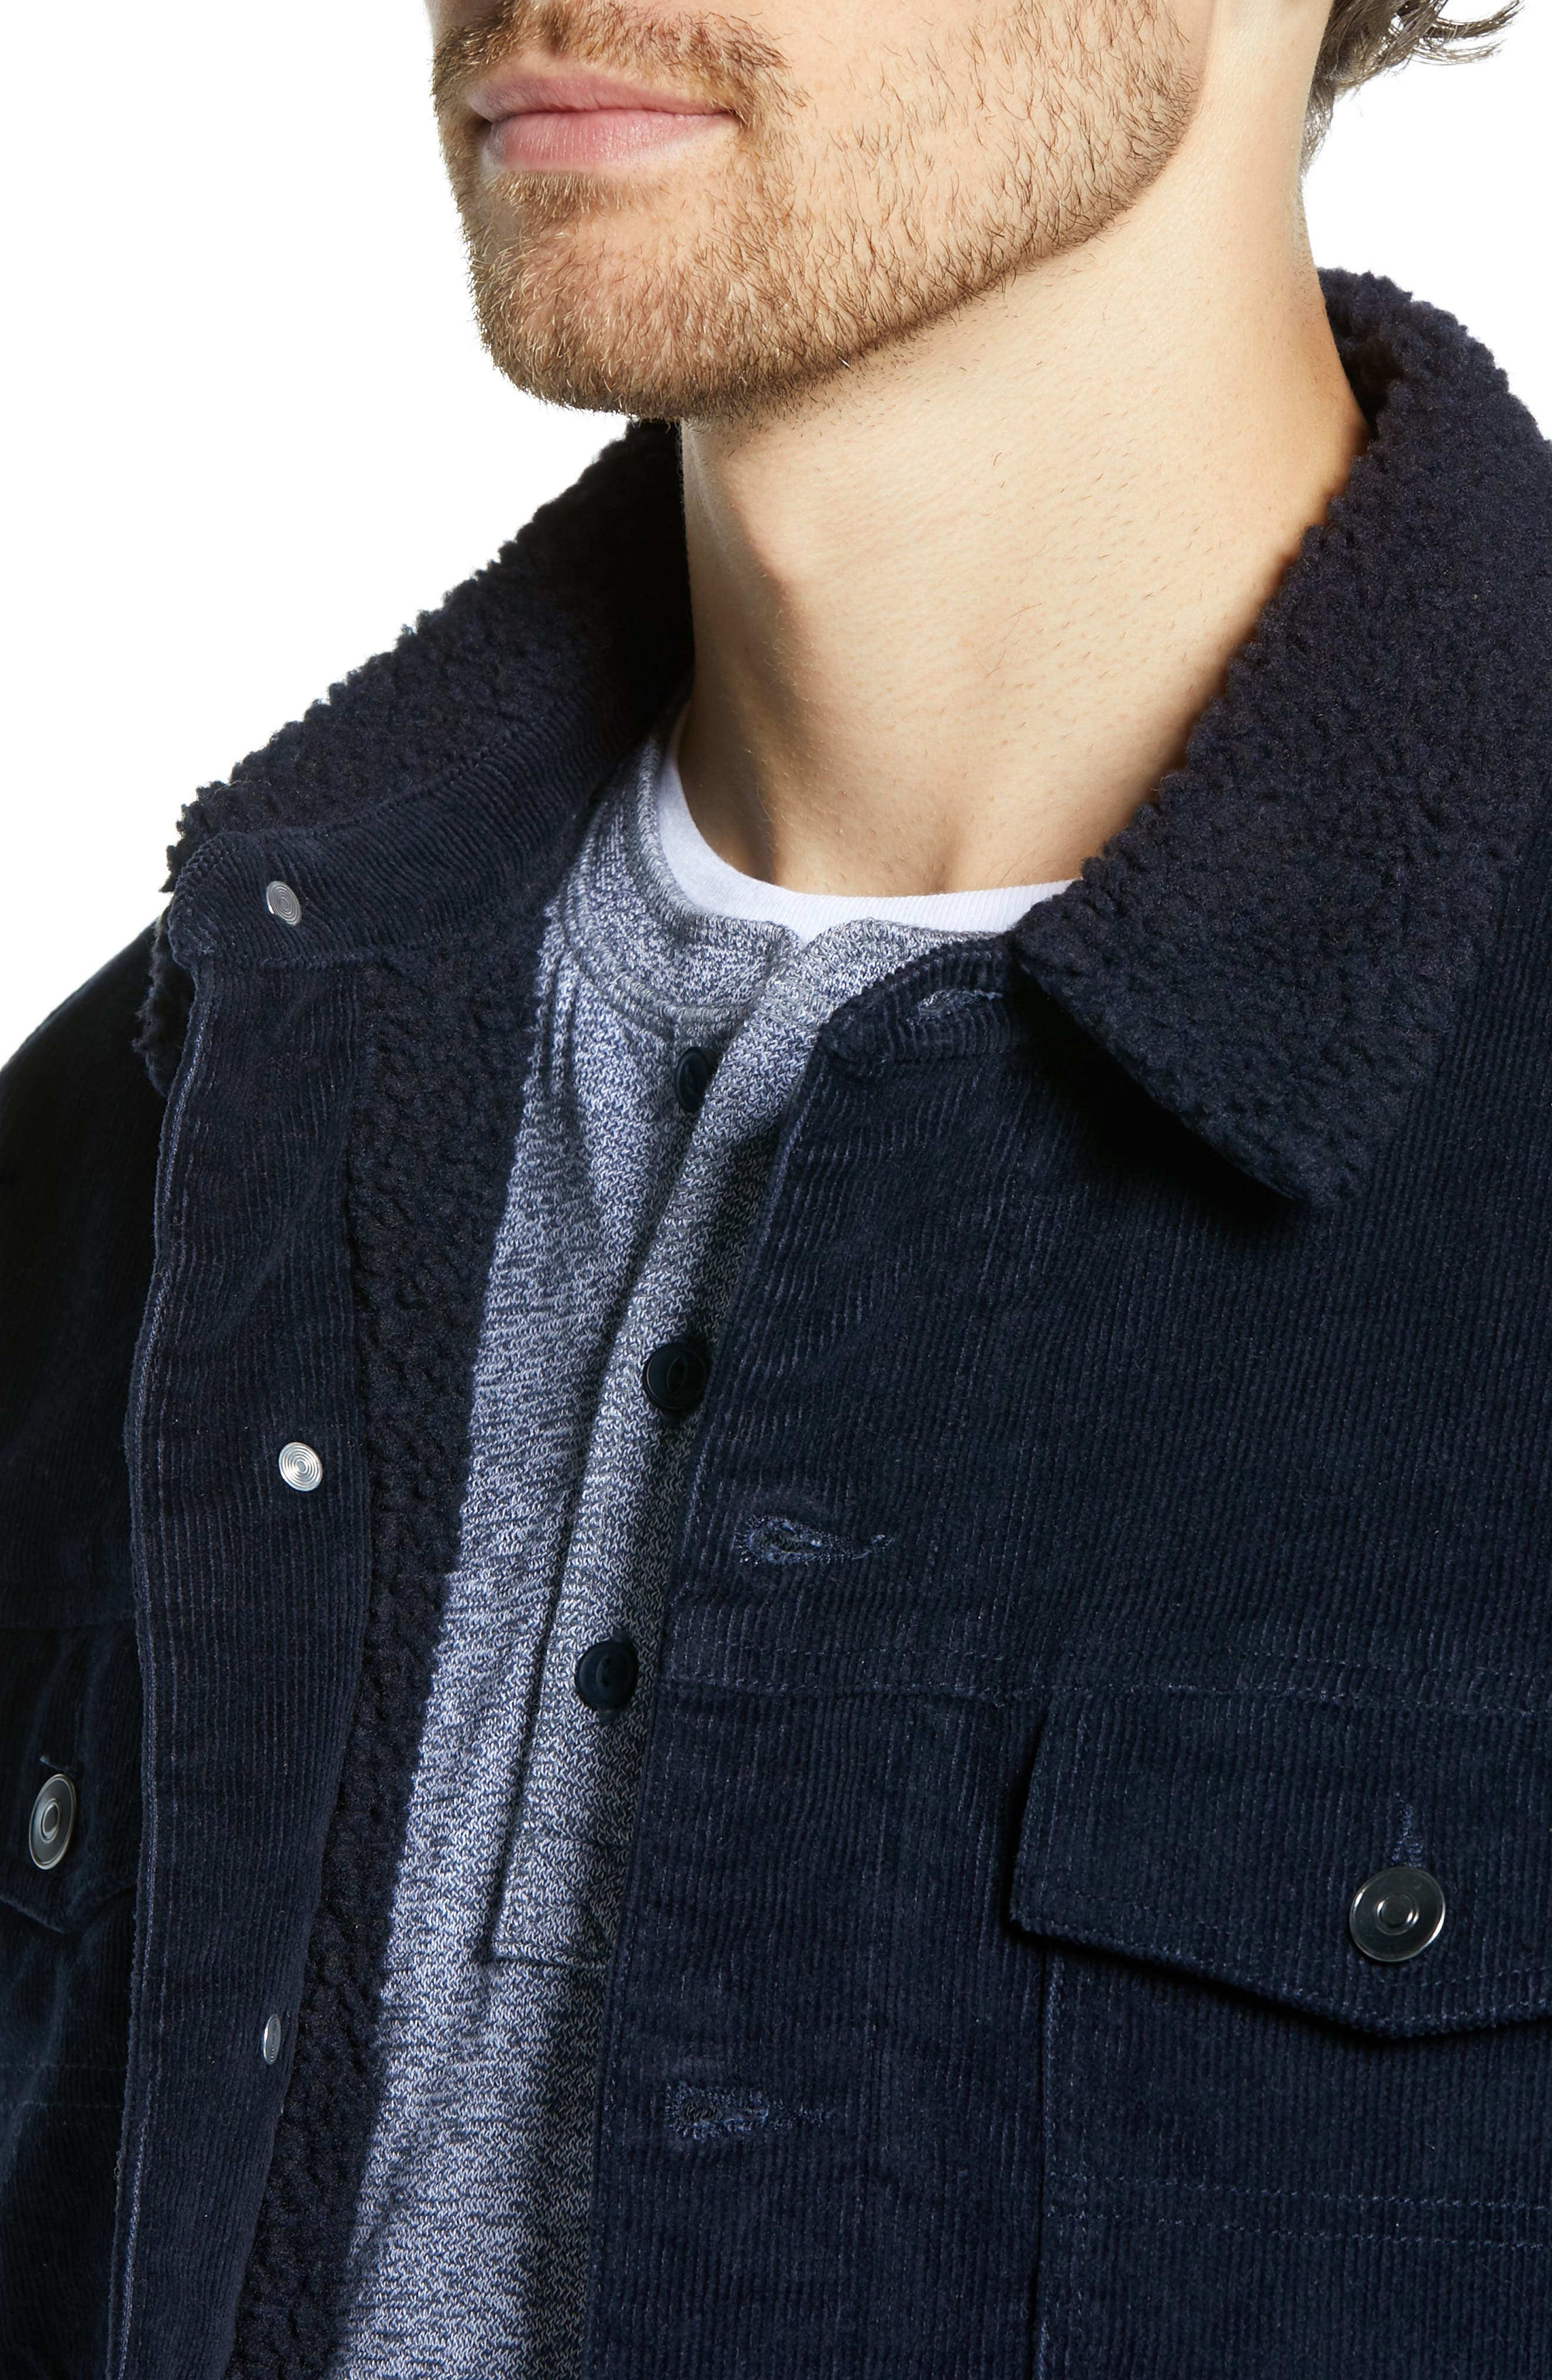 Regular Fit Faux Shearling Trim Corduroy Trucker Jacket,                             Alternate thumbnail 4, color,                             NAVY NIGHT